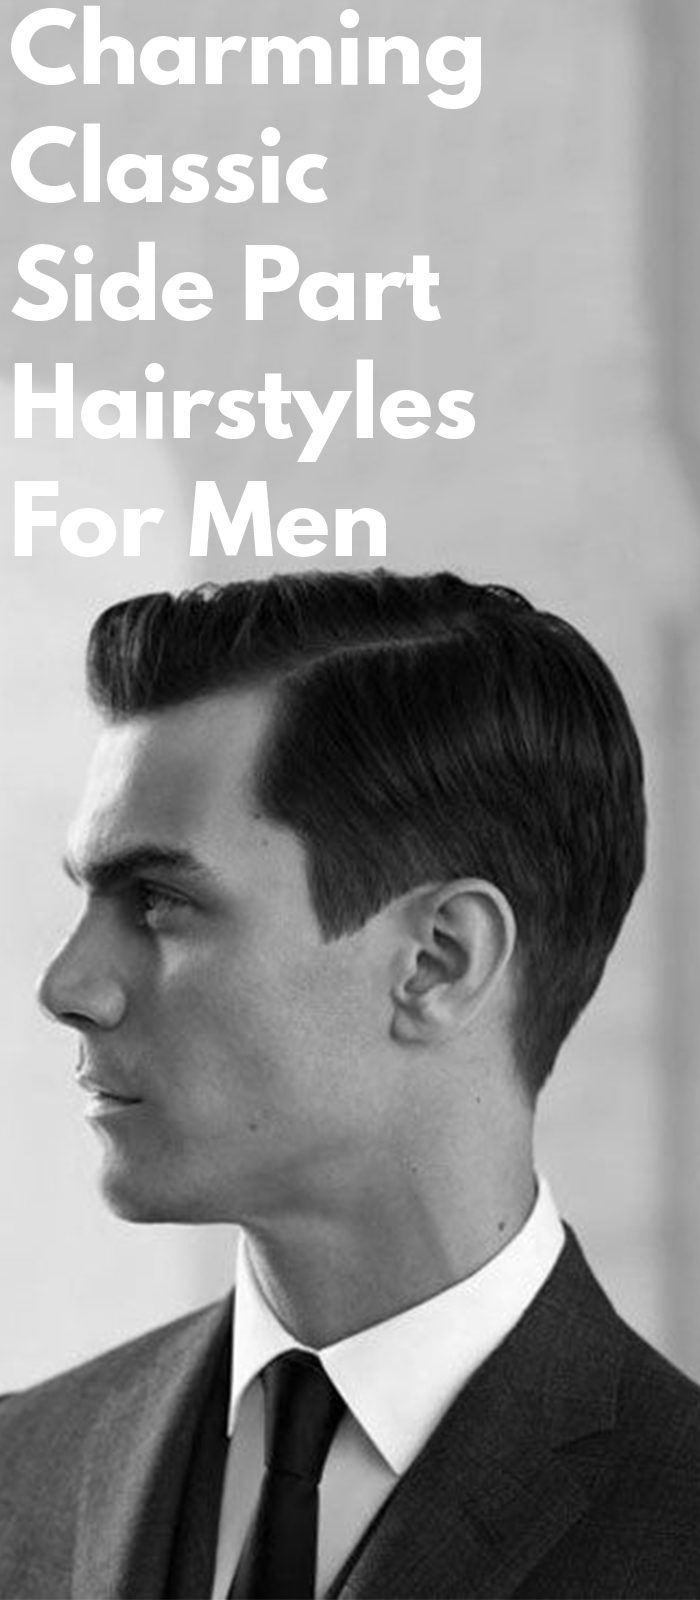 Charming Classic Side Part Hairstyles For Men